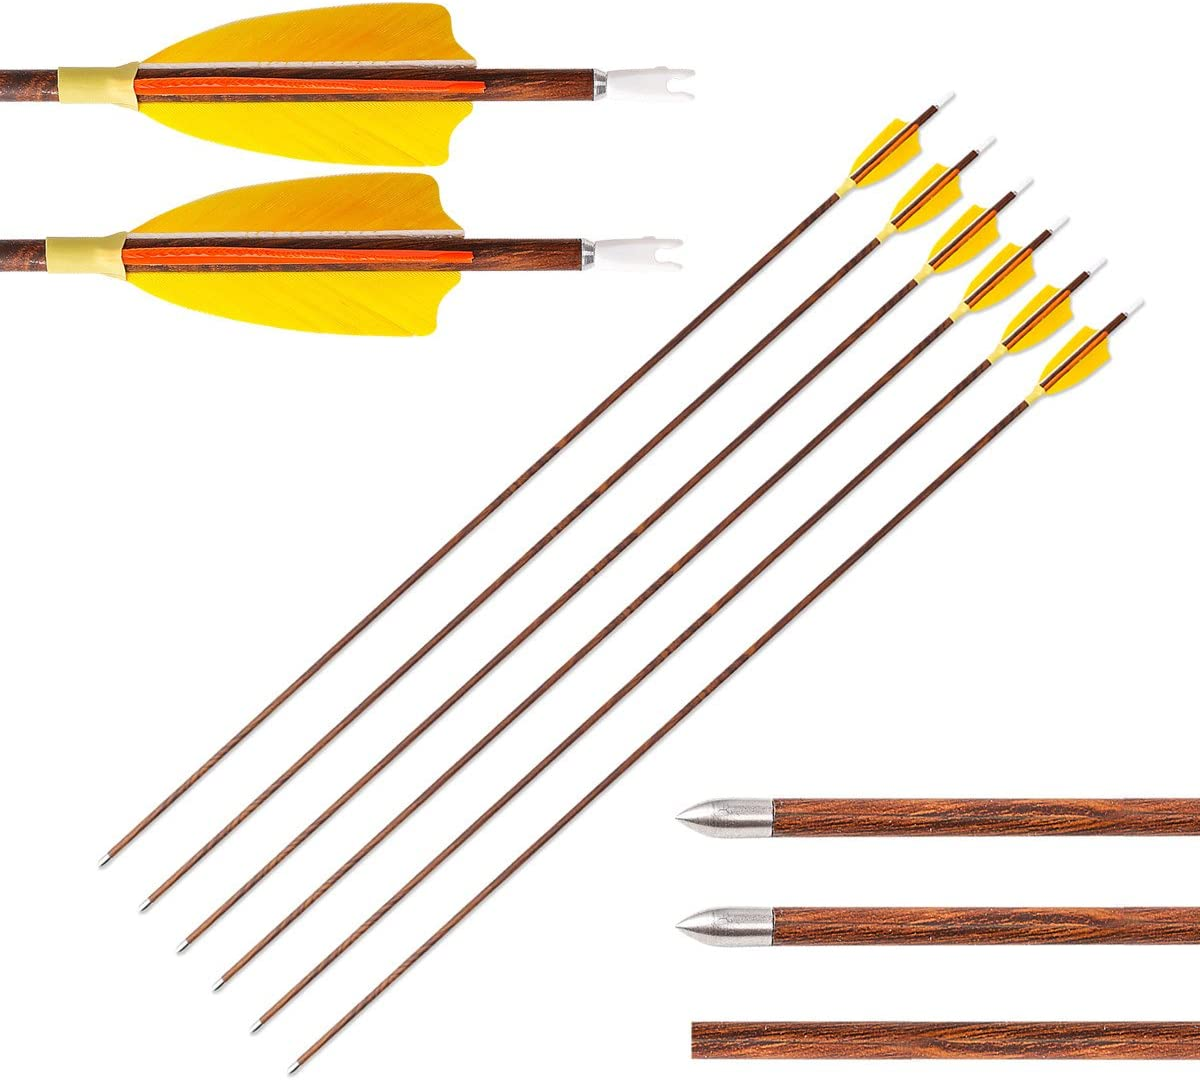 Letszhu 6 Pack Carbon Arrows 800 Spine Practice Shaft with Real Feathers Fletching for Compound Recurve Bows